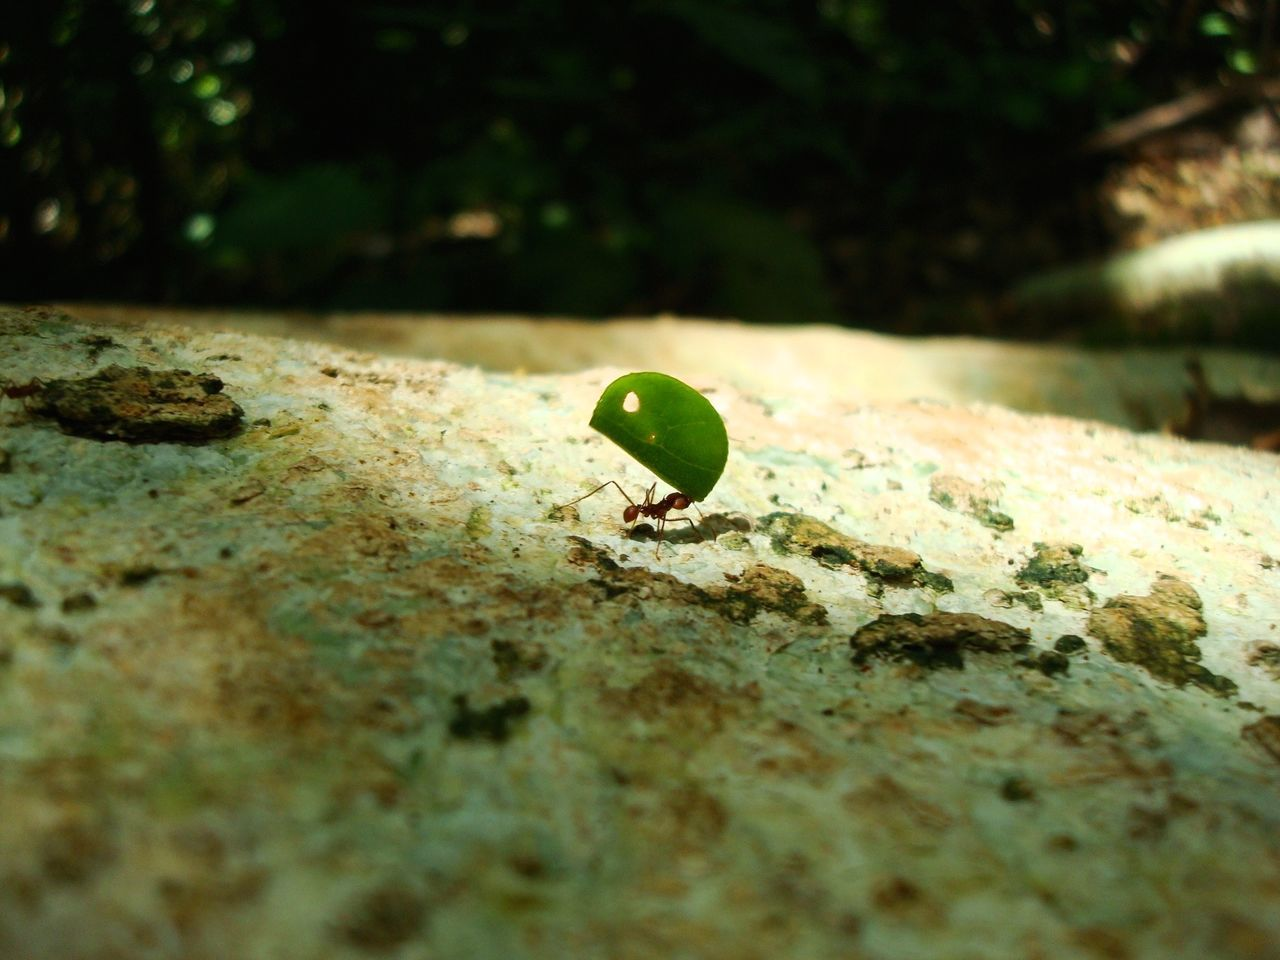 Close-Up Of Ant And Leaf On Rock